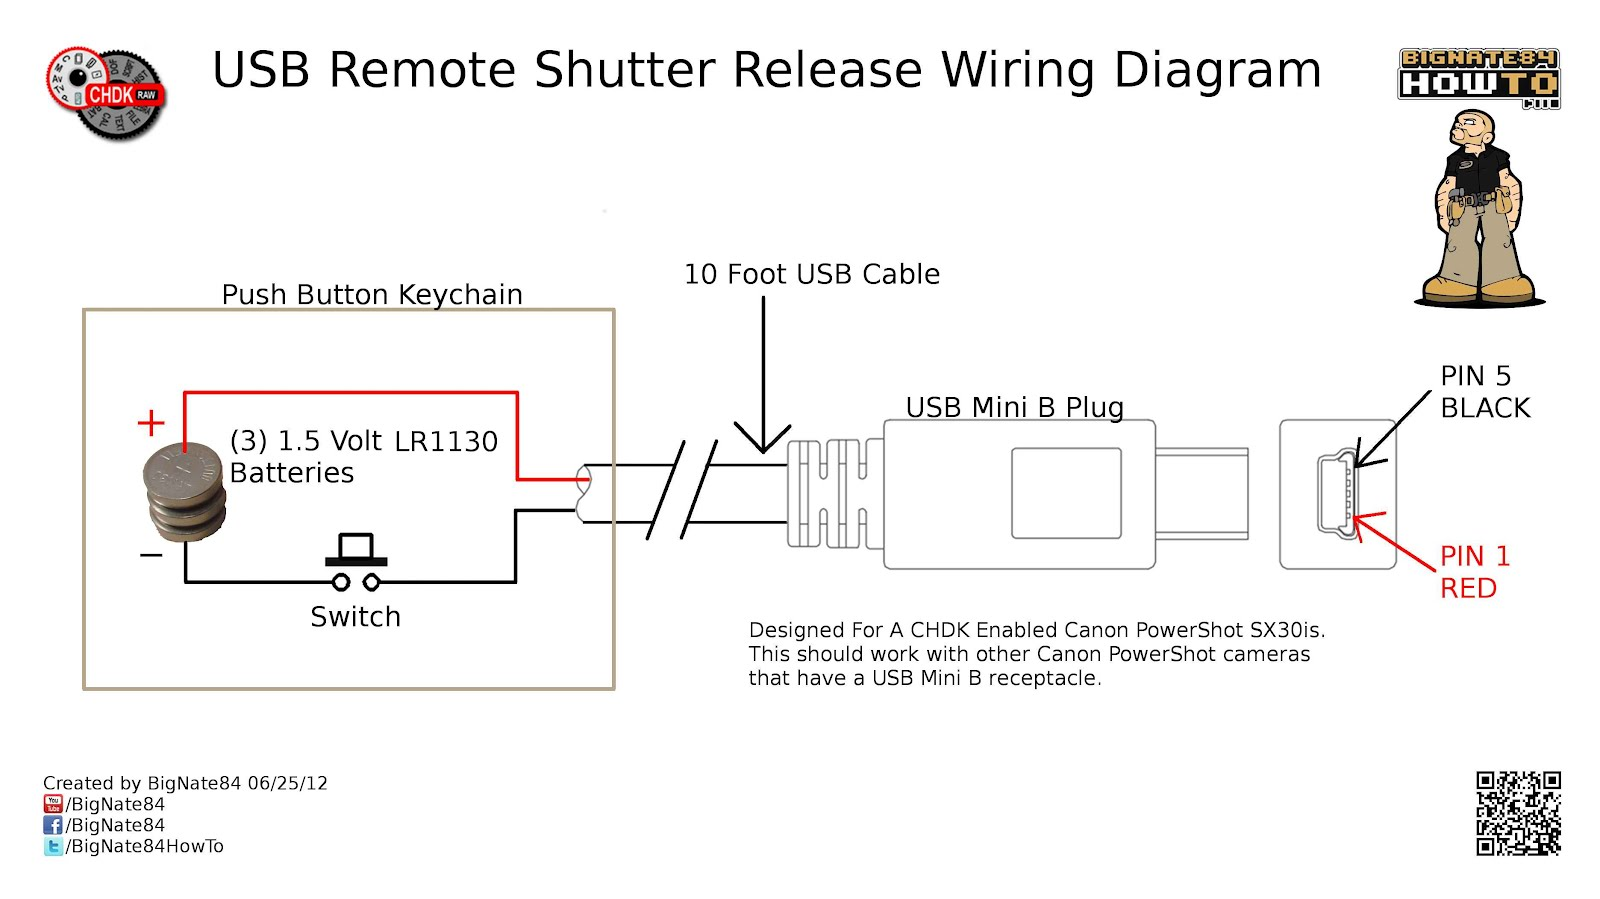 image - 0001 usb remote shutter wiring diagram -1.jpeg ... usb audio wiring diagram